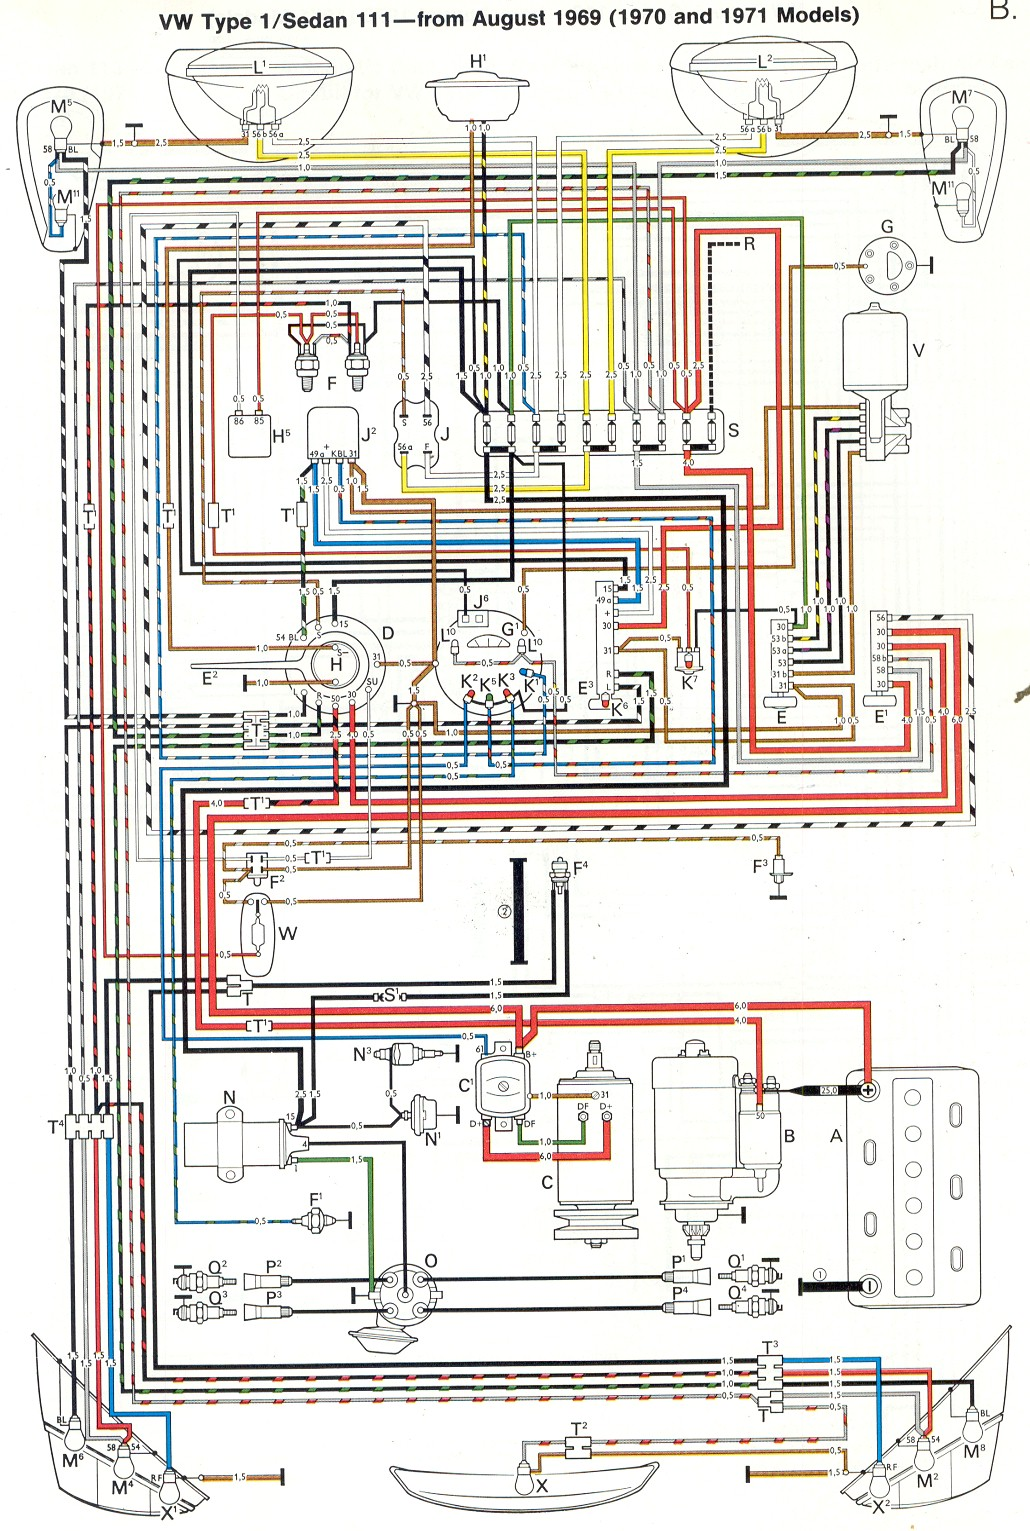 Viewtopic also Wiringt1 additionally Wiringt2 furthermore Type 1 Electrical Equipment furthermore 1999 Chevy Silverado Wiring Diagram. on 1971 vw super beetle starter diagram